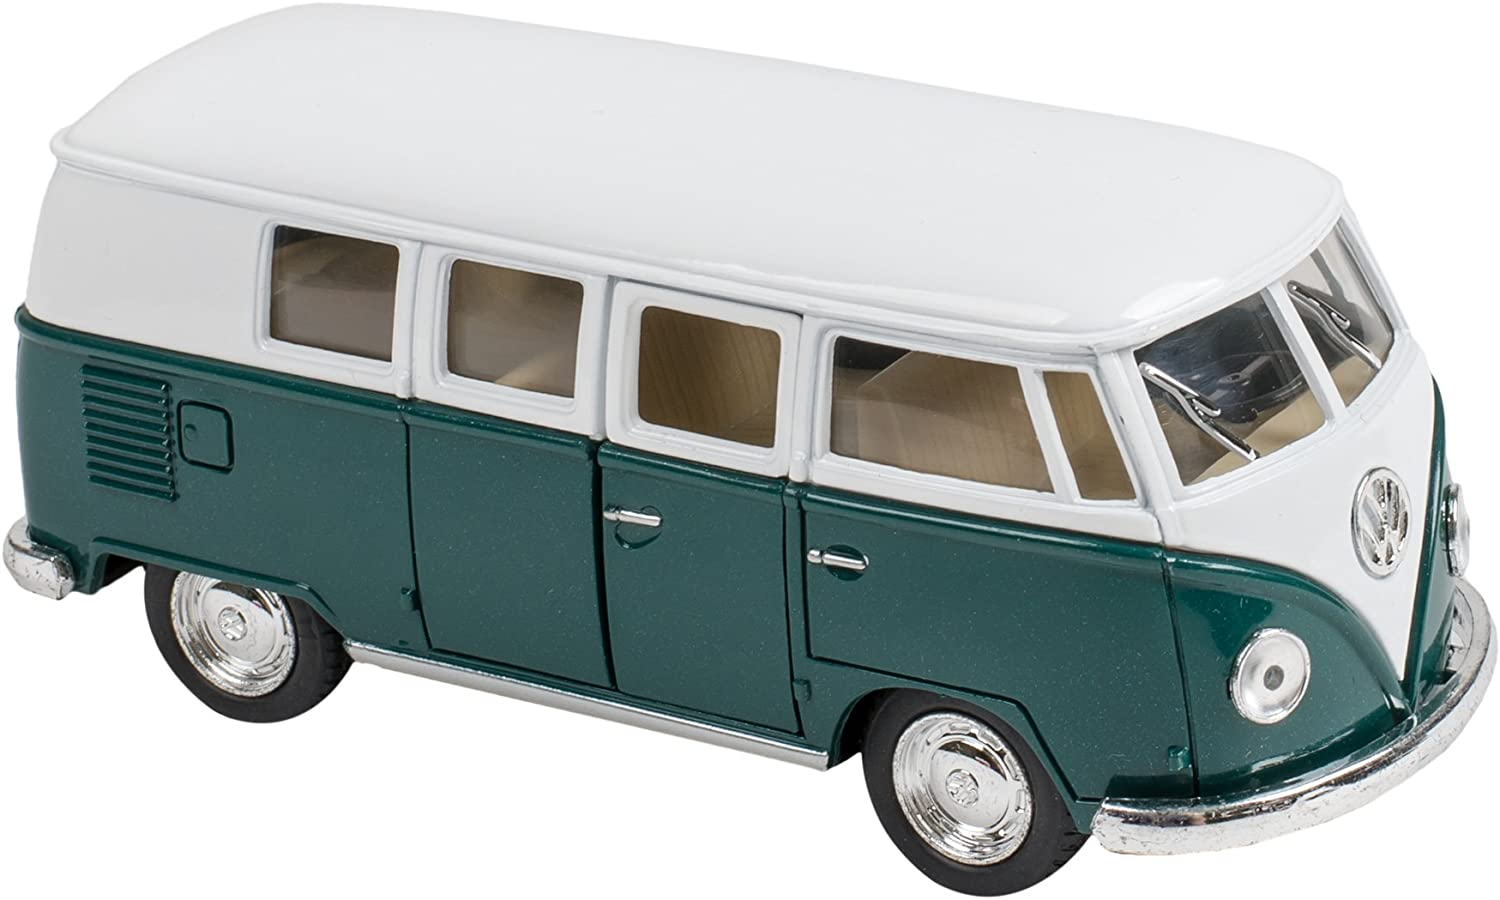 Master Toys & Novelties 1962 Volkswagon VW Micro Bus Die Cast Toy, Green and White